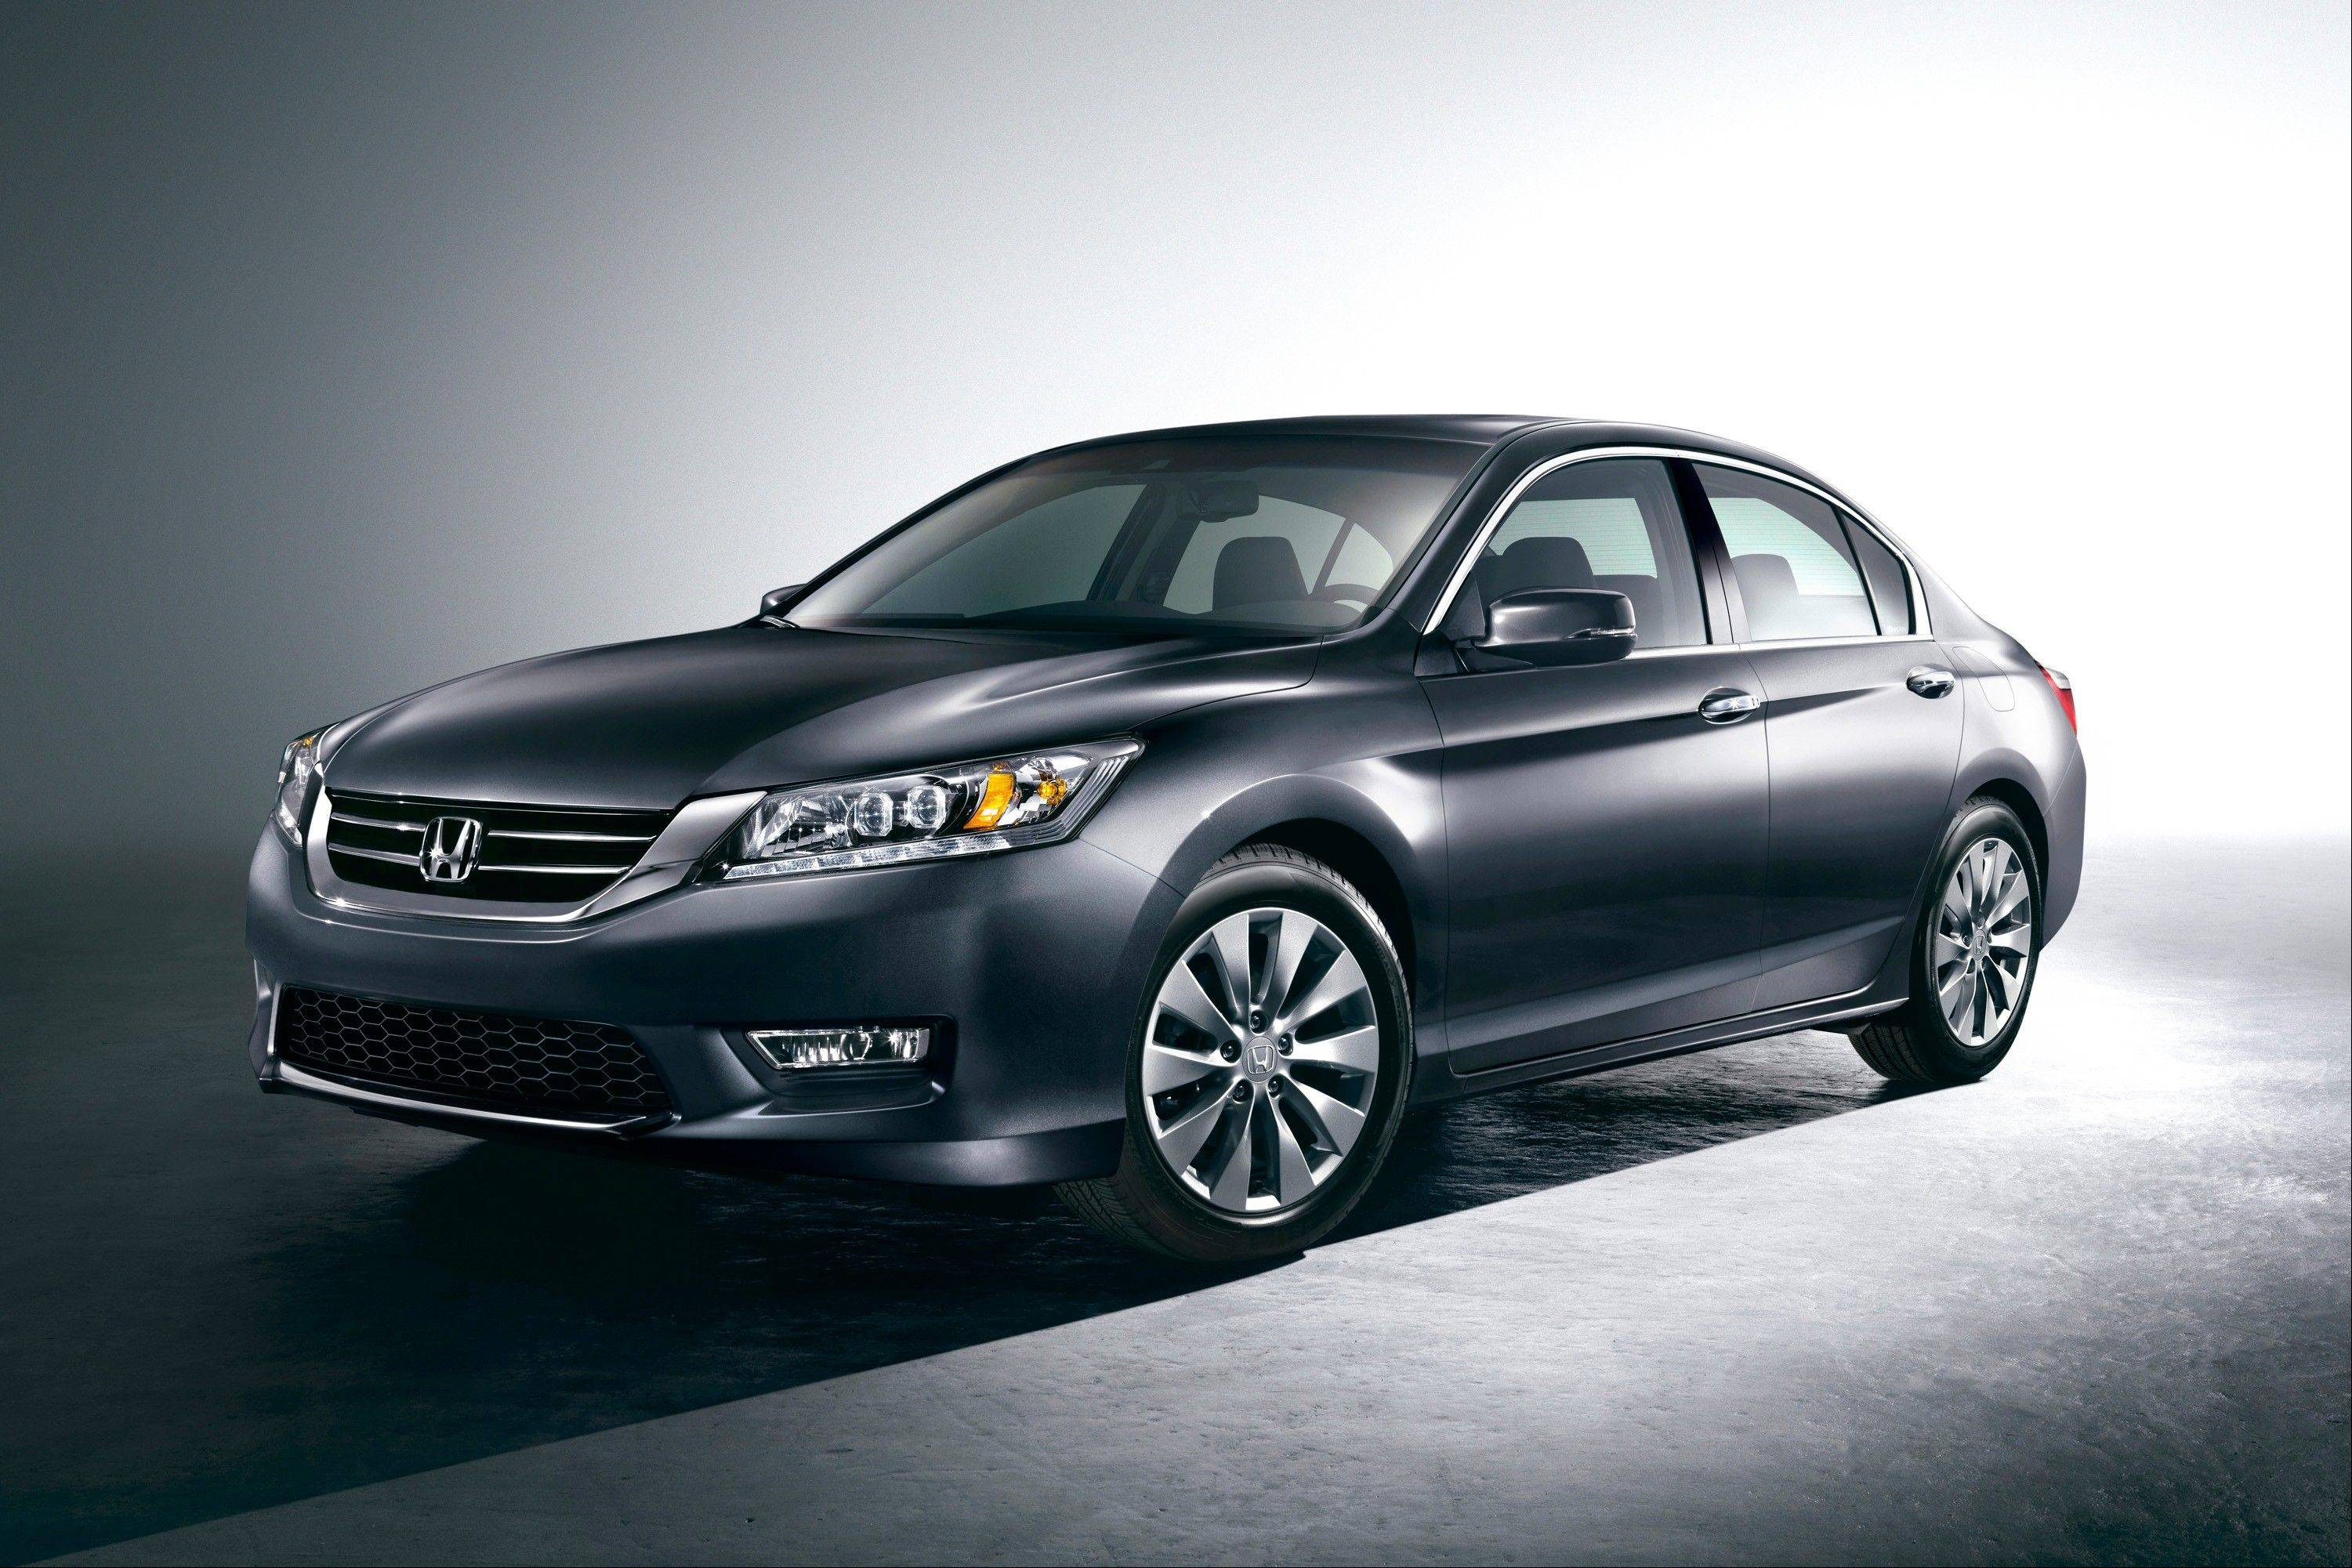 The 2013 Honda Accord hits showrooms in a couple weeks, with a fresh athletic look and better fuel economy. Honda, burned by criticism that it cheapened its new Civic earlier this year, says that won't happen with its newest remake.